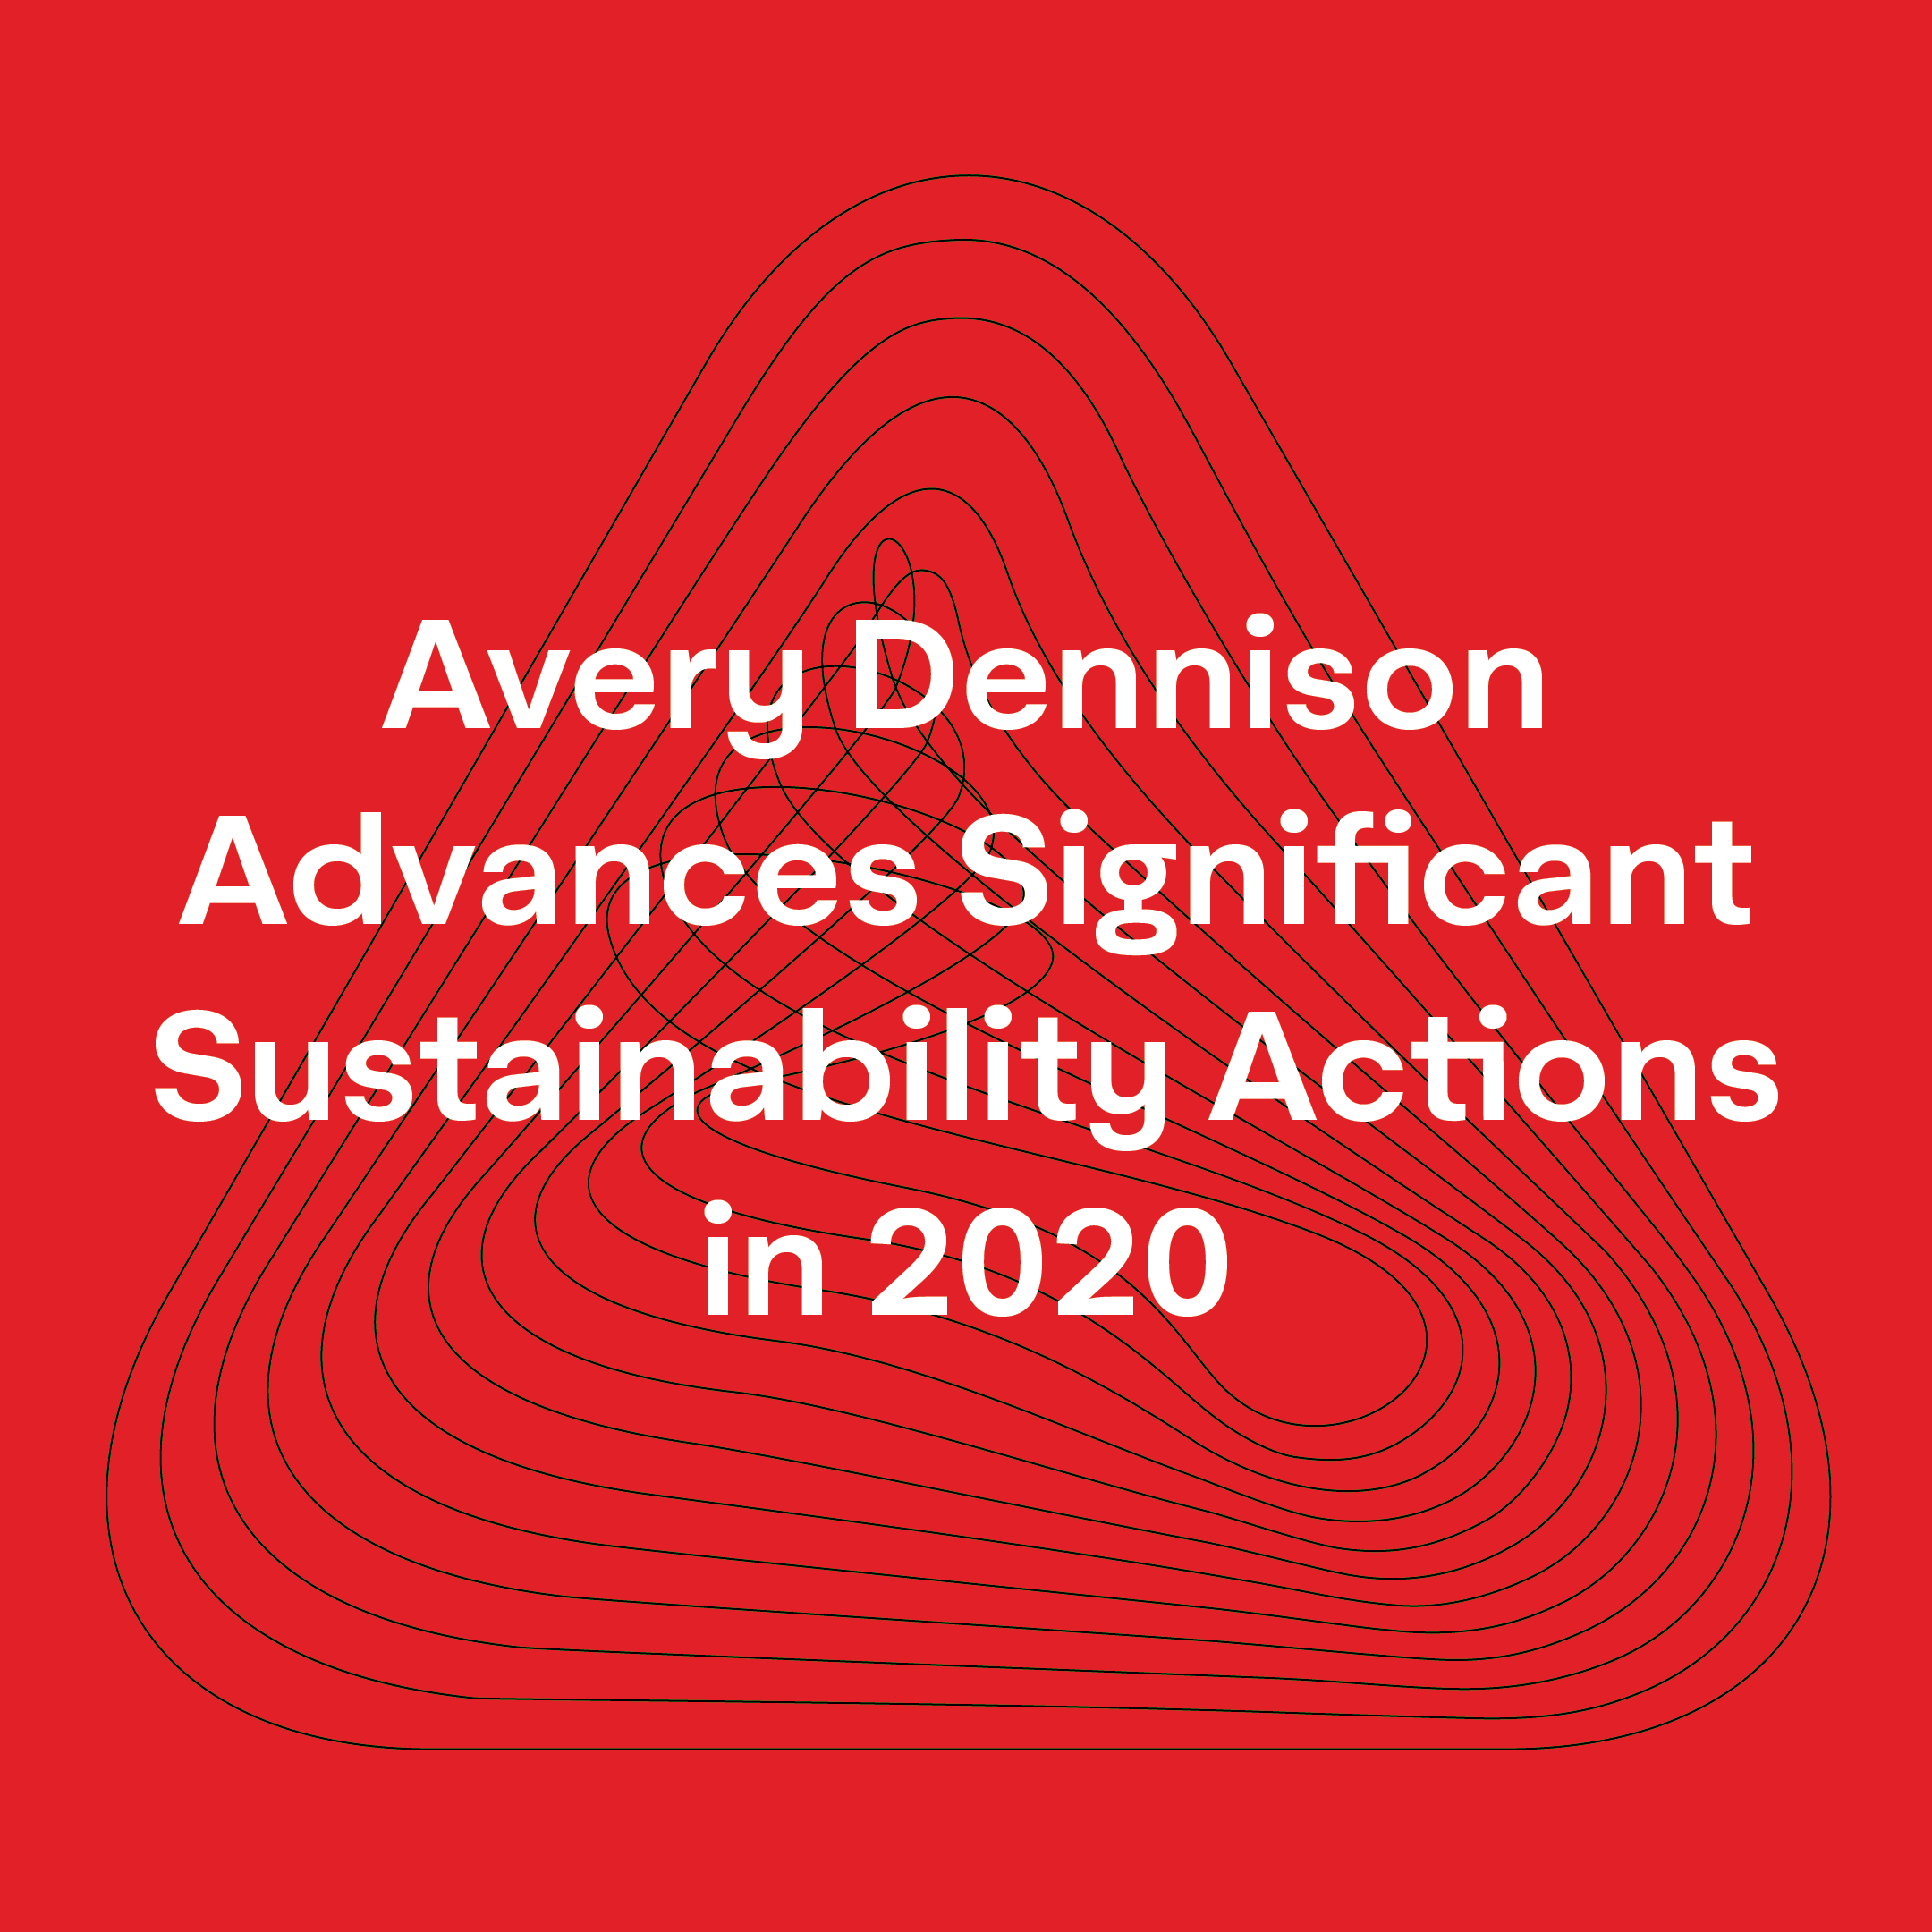 AD Sustainability Actions 2020 IG 1080x1080.png (AD-Public)️